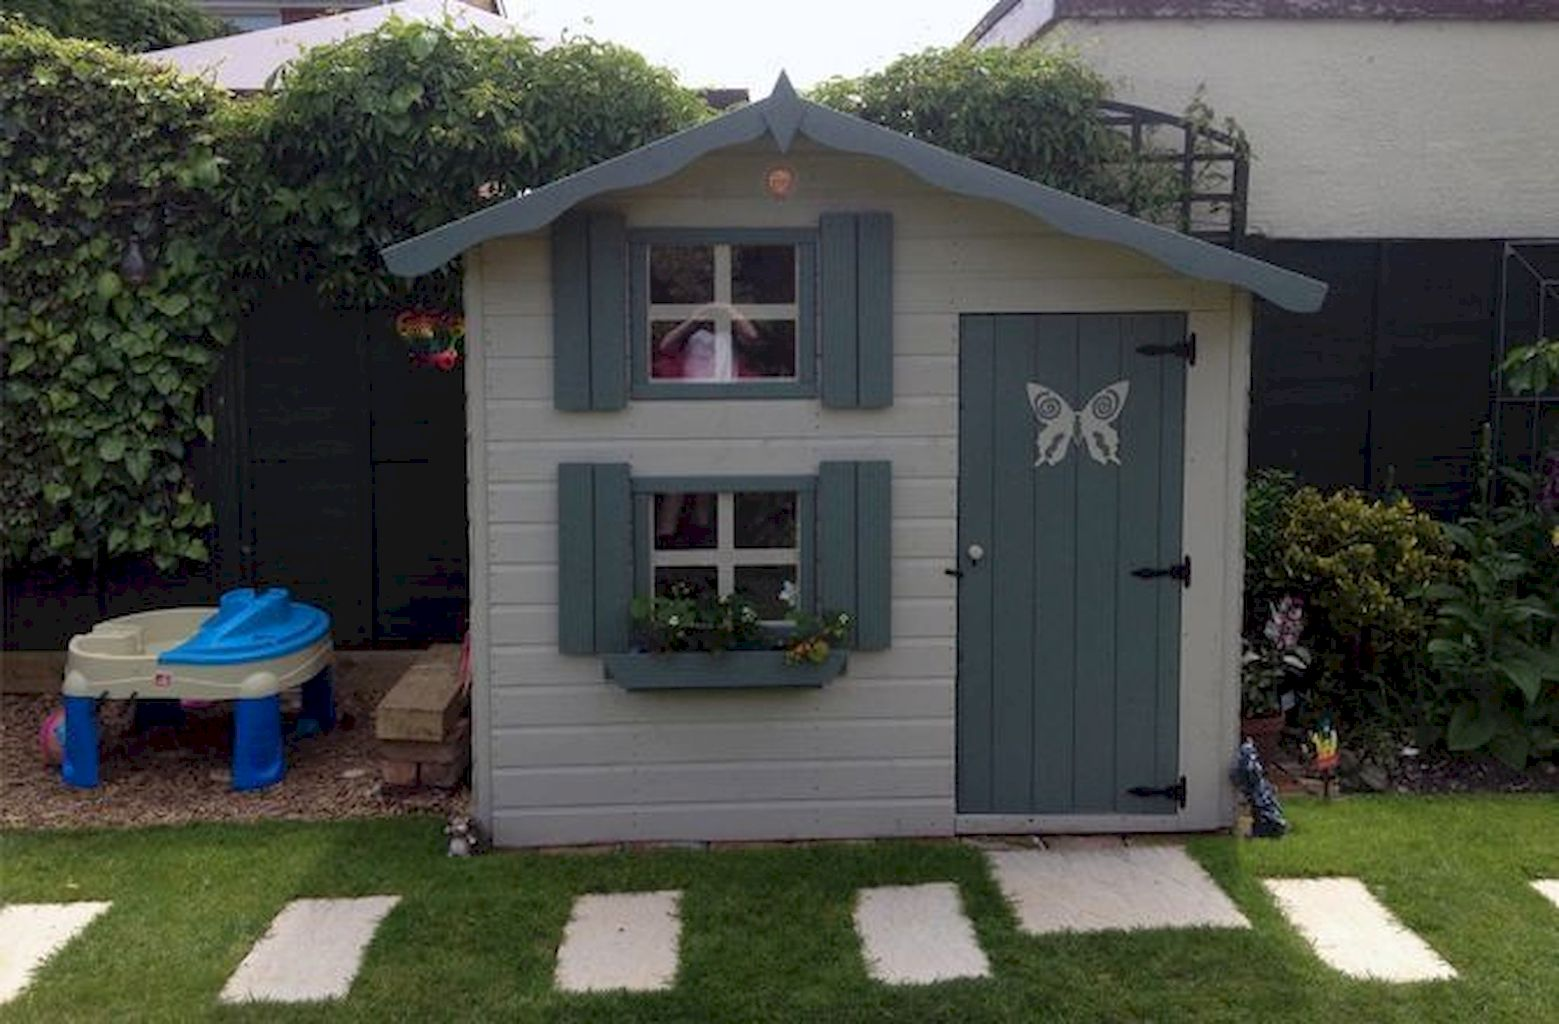 Fabulous Playhouse Plan Into Your Existing Backyard Space